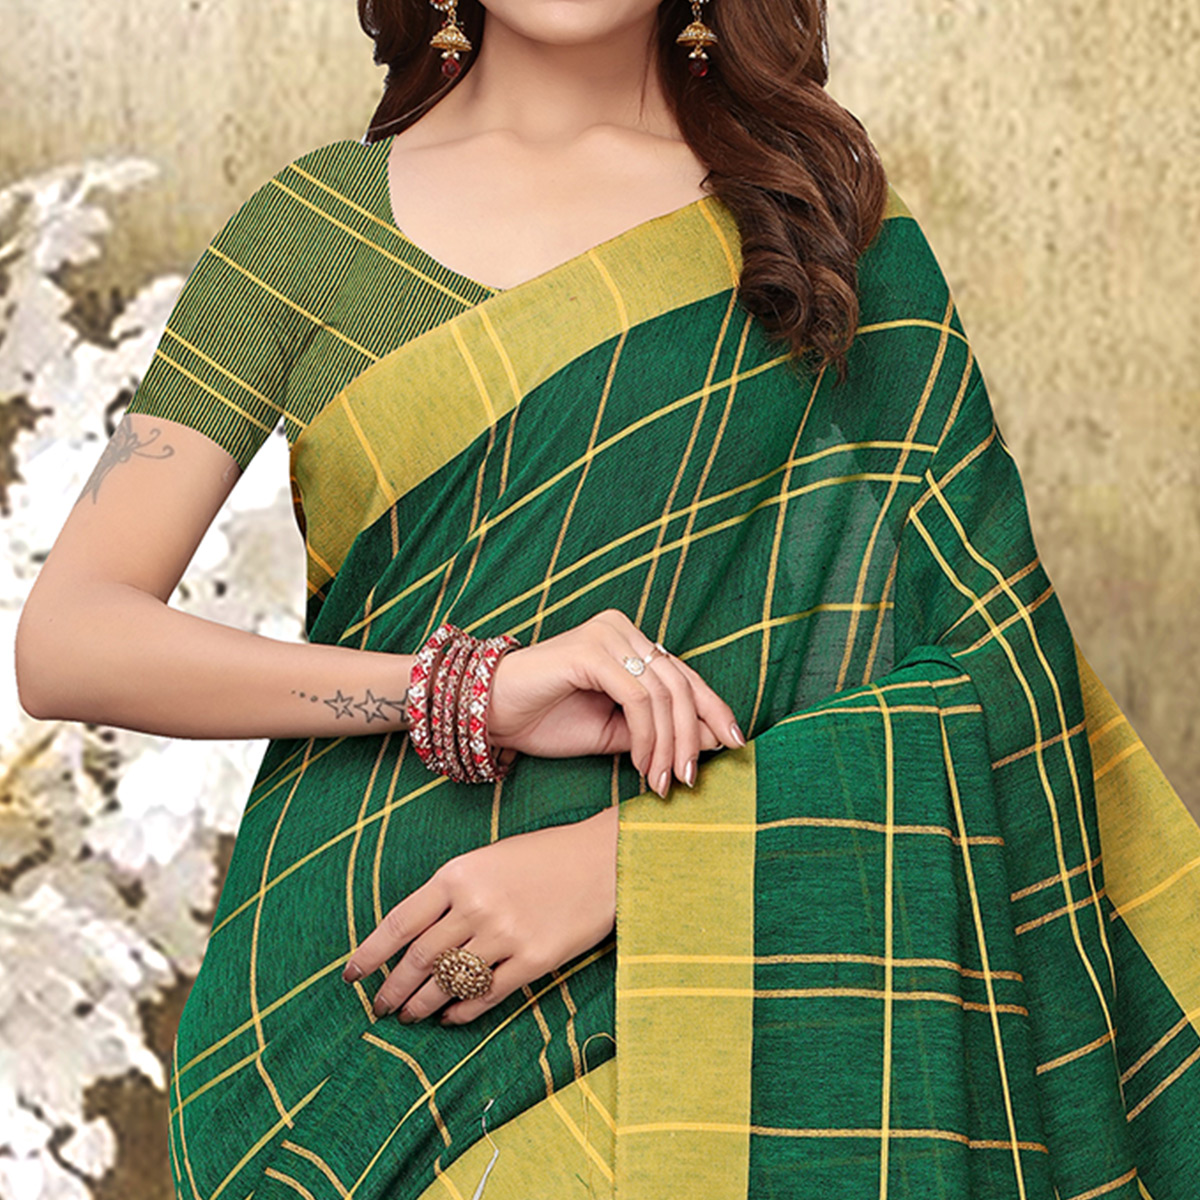 Adorning Green Colored Festive Wear Checks Print Pure Linen Saree